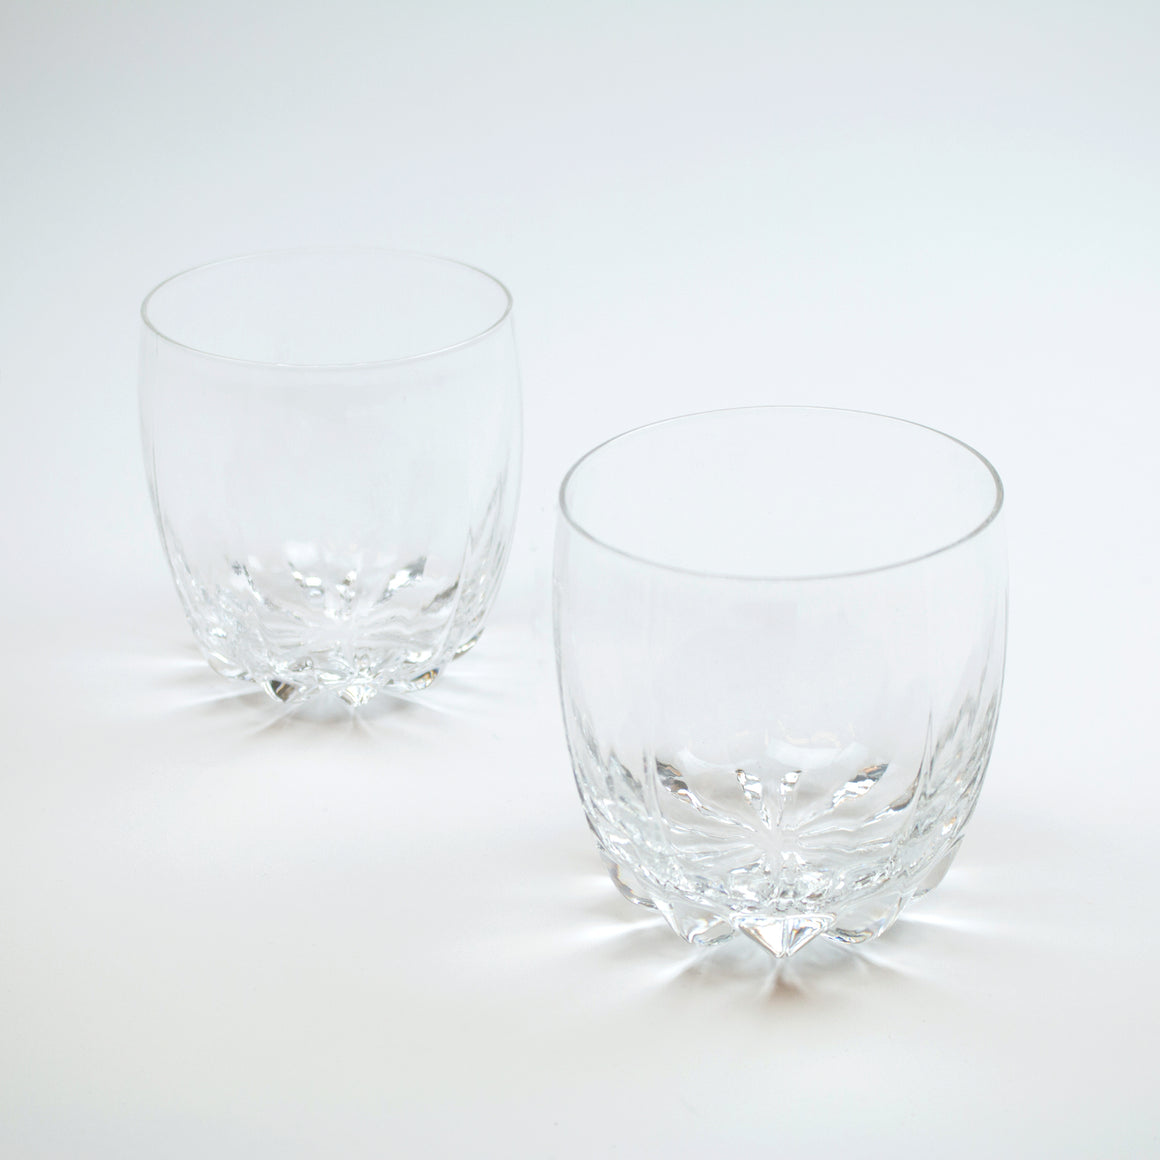 Crystal Cactus Tumbler (Set of 2)